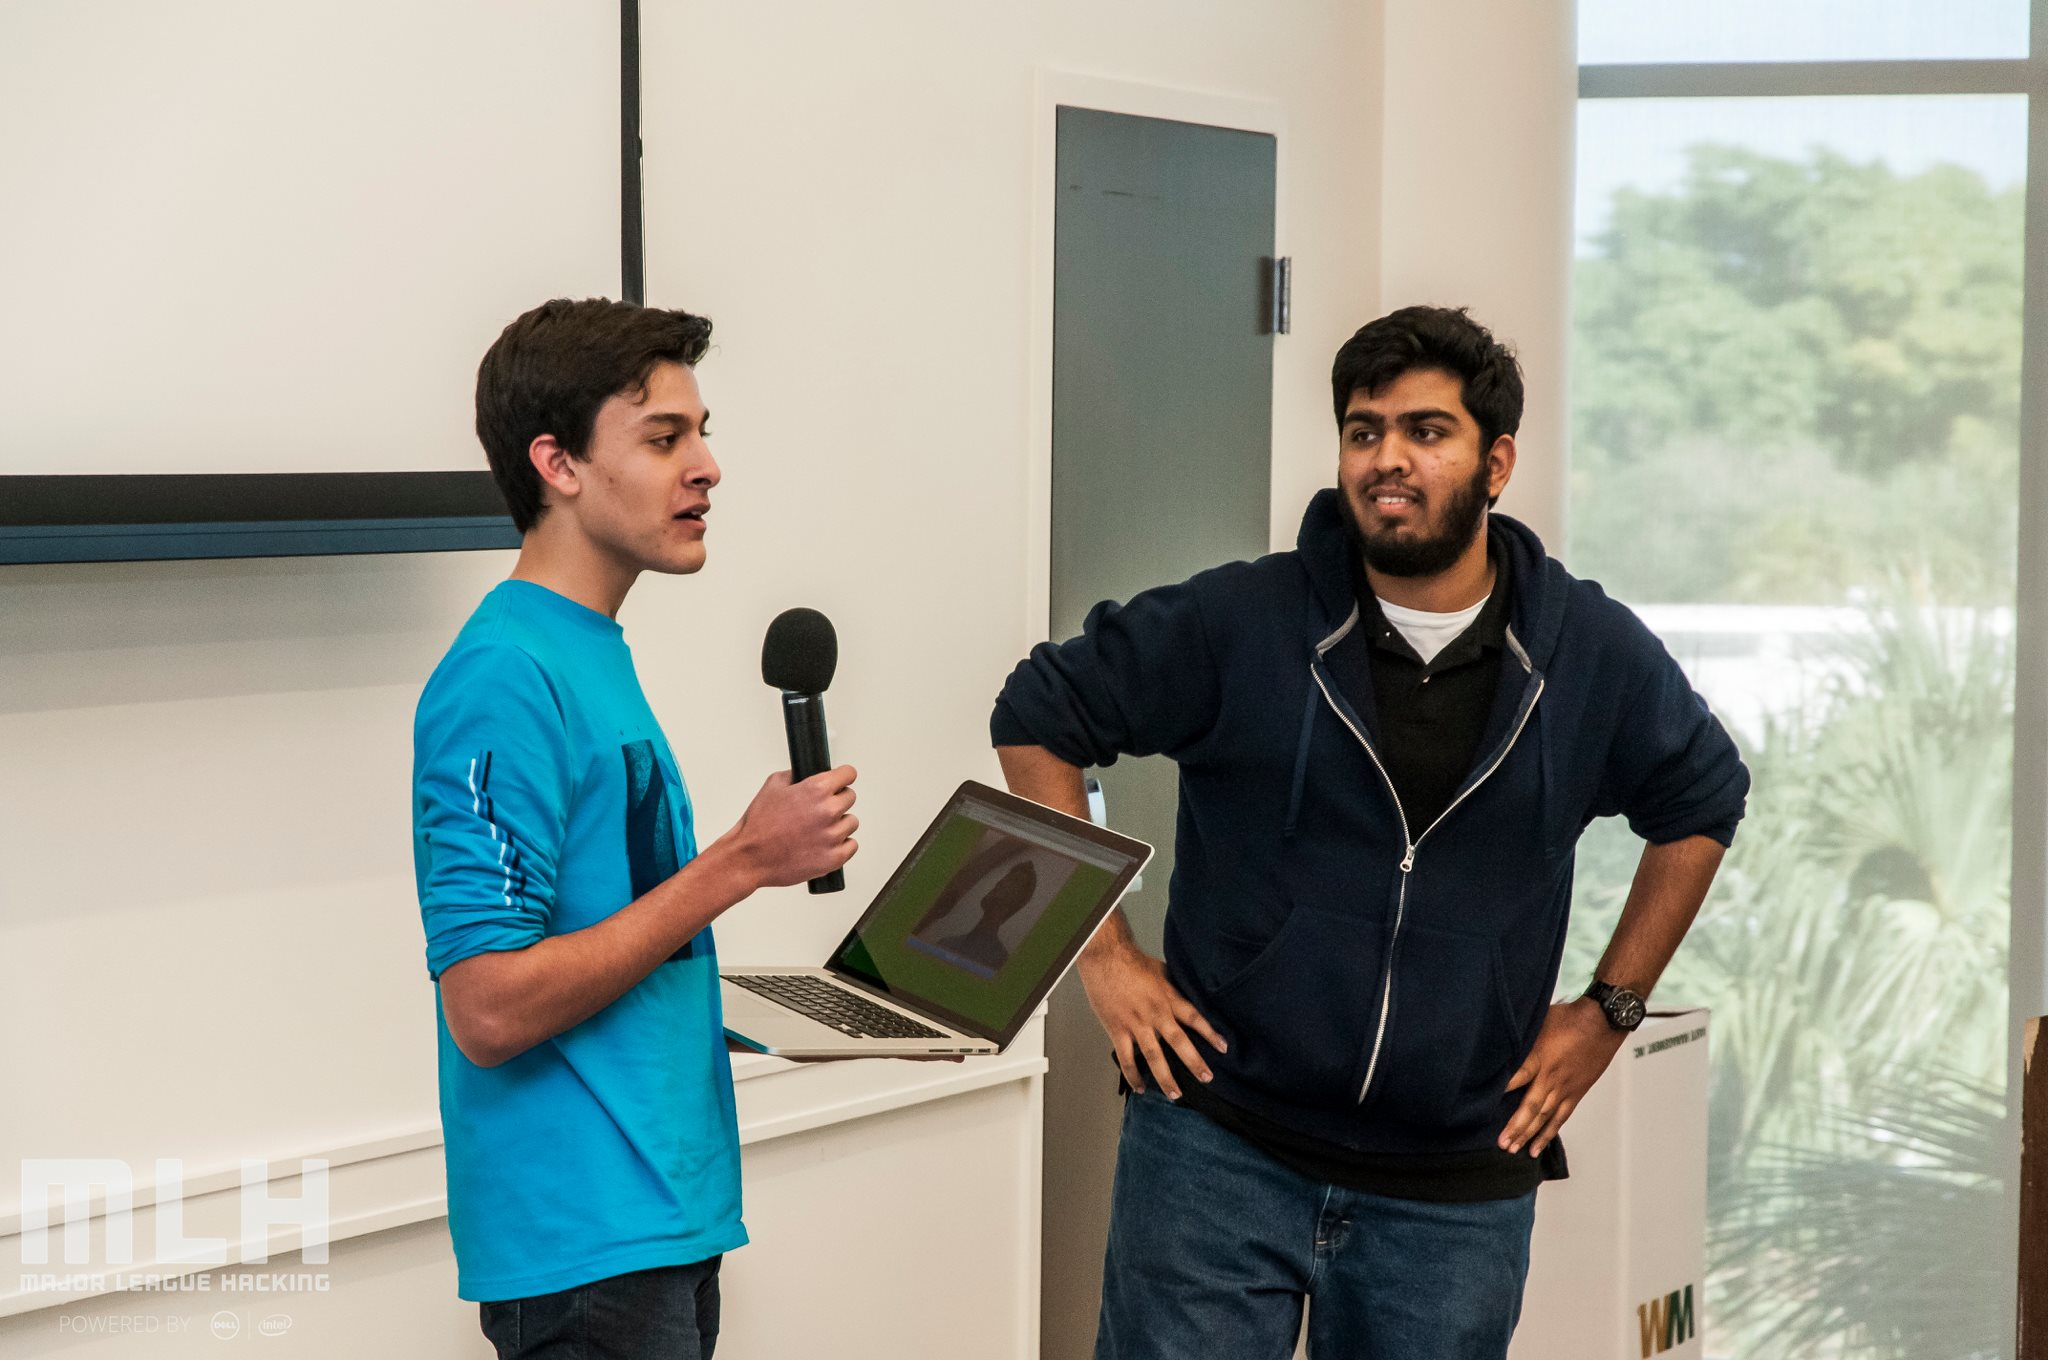 two male students, one holding a laptop and a microphone, presenting their project to the audience